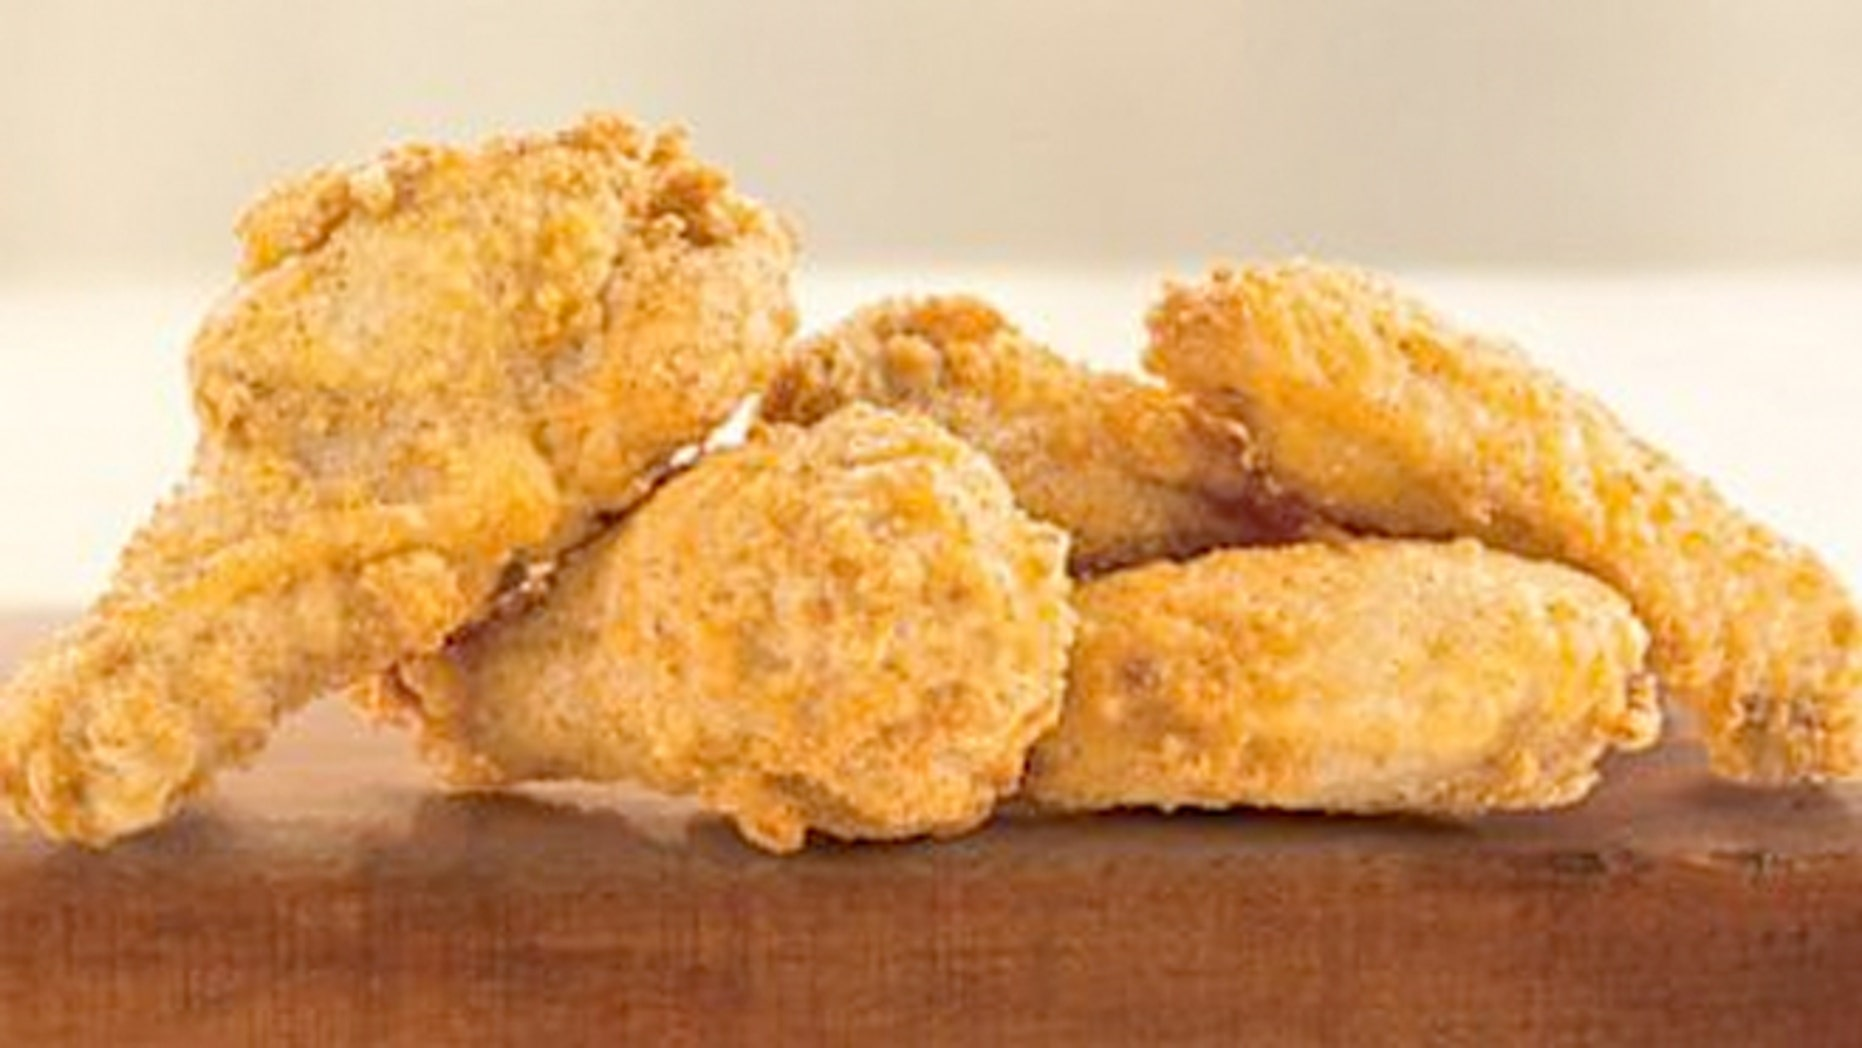 McDonald's is selling its Might Wings at a clearance rate of $.60 each.